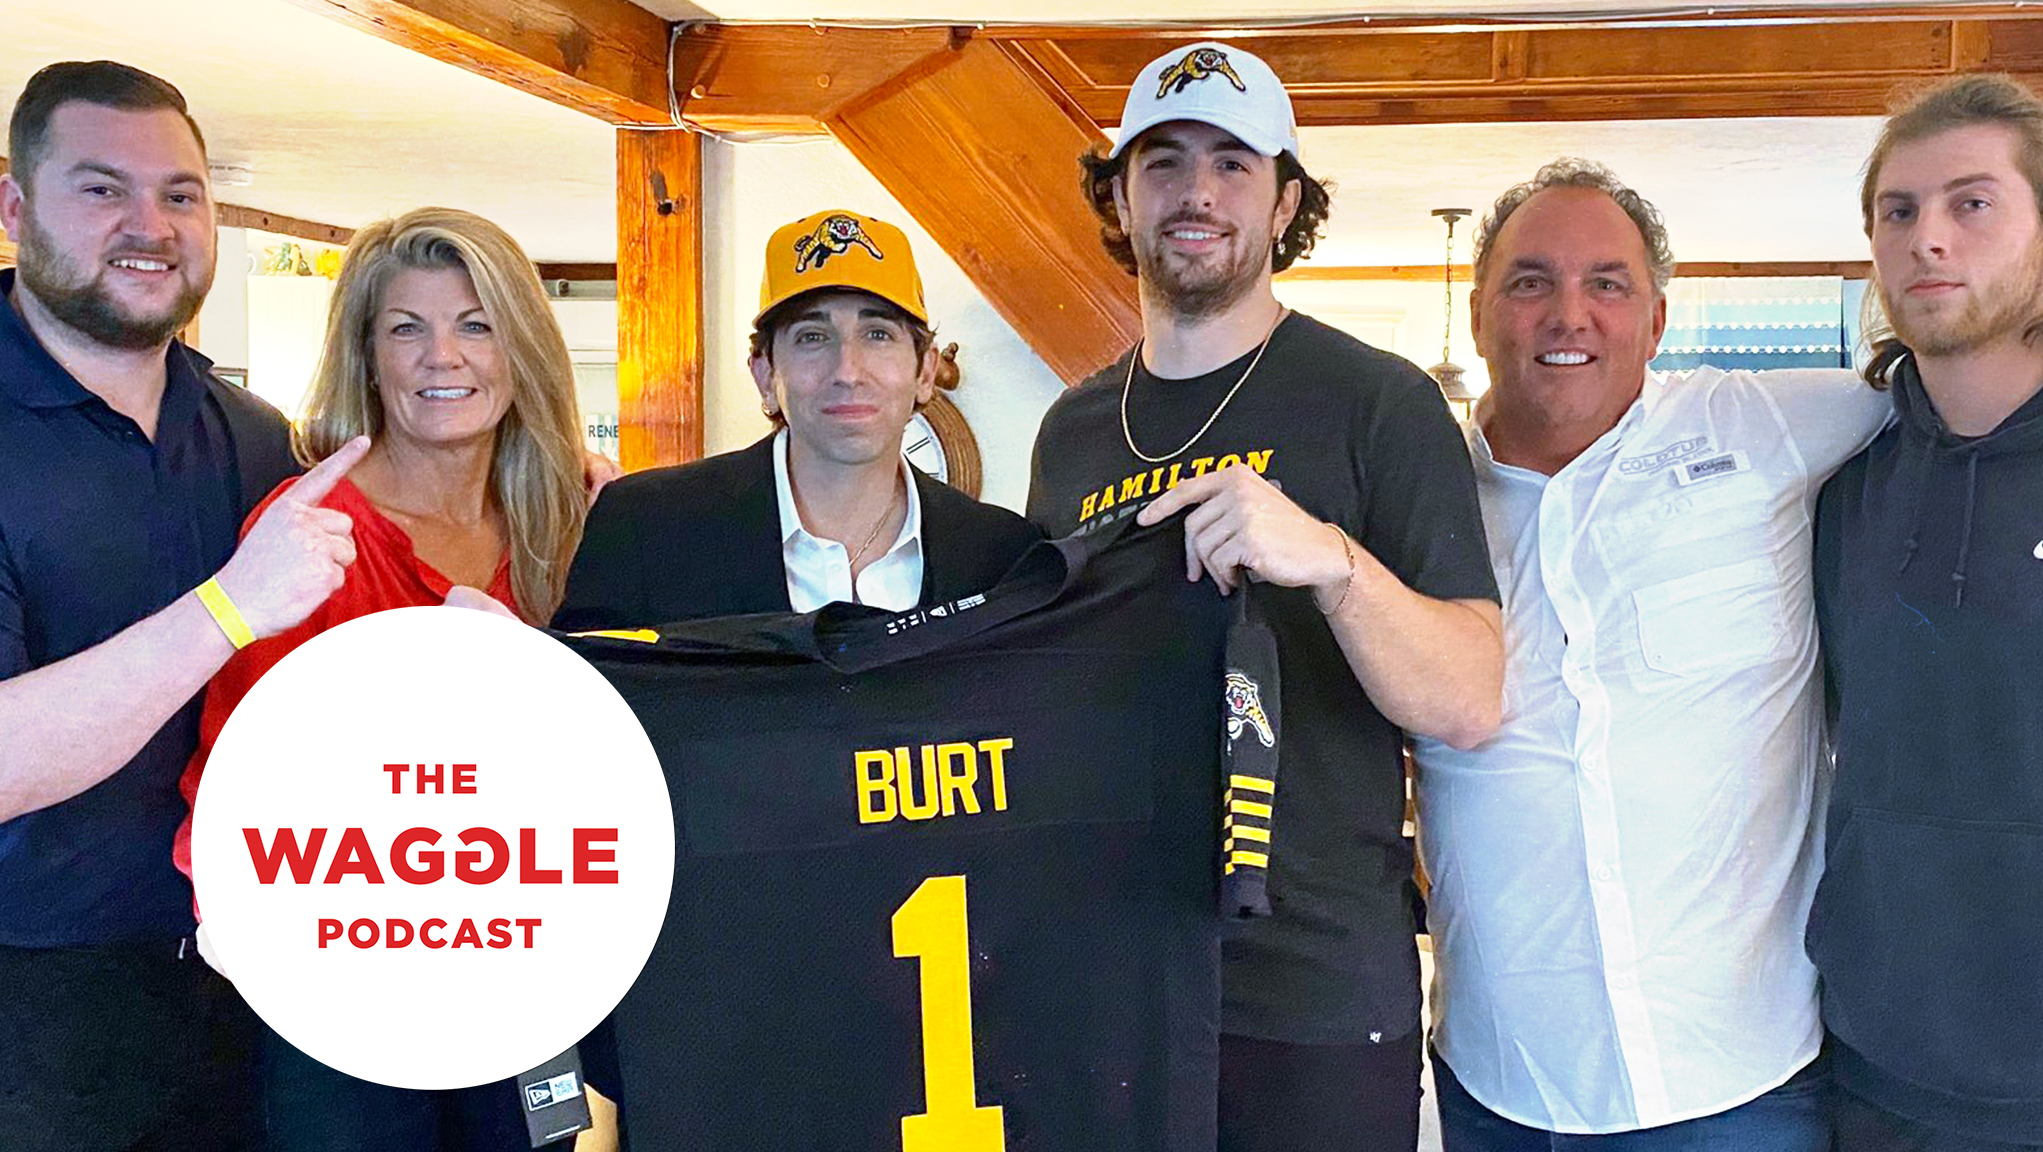 The Waggle, Ep. 261: Getting to know No. 1 pick Jake Burt